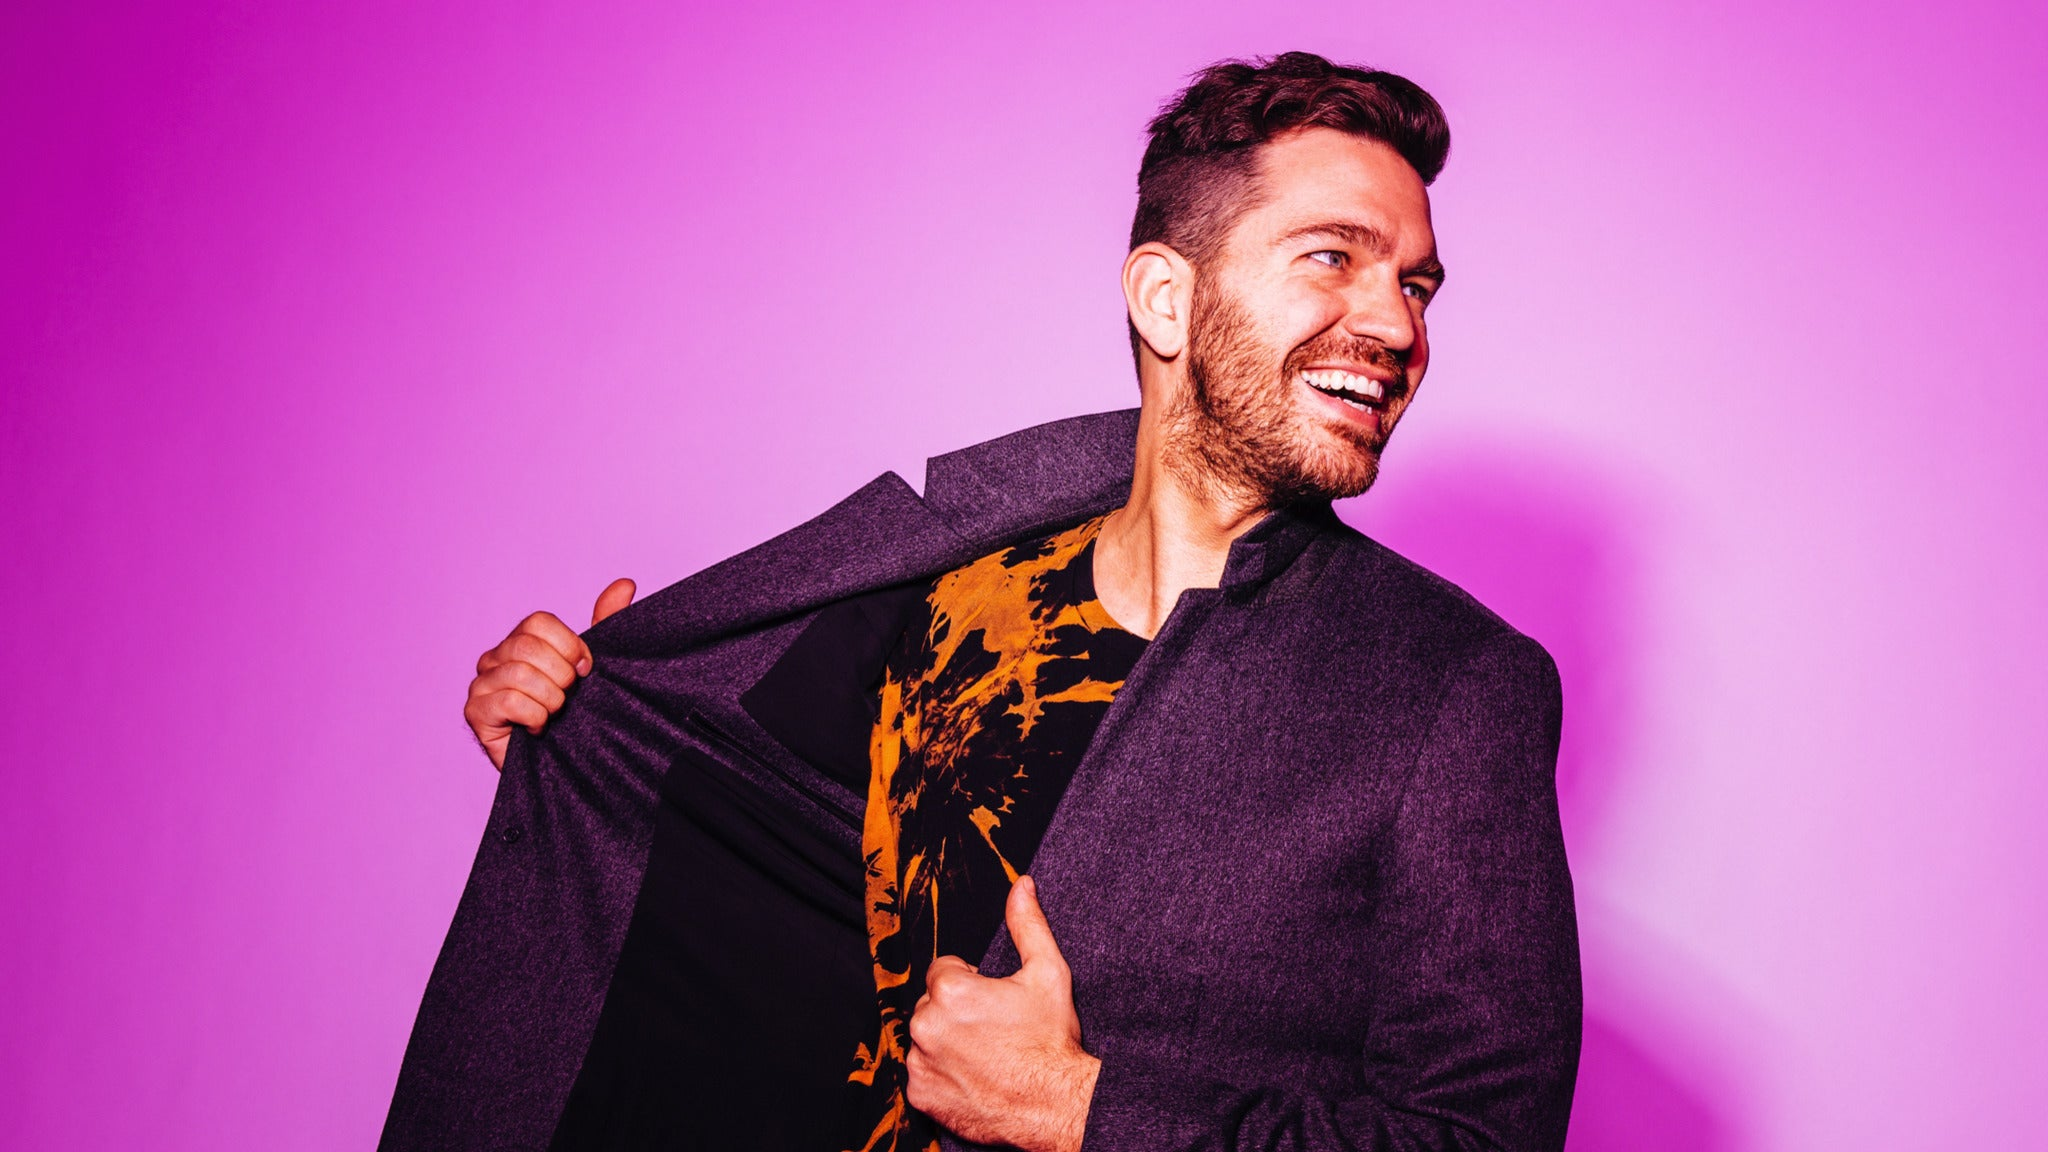 Andy Grammer - The Good Parts Tour at The Queen